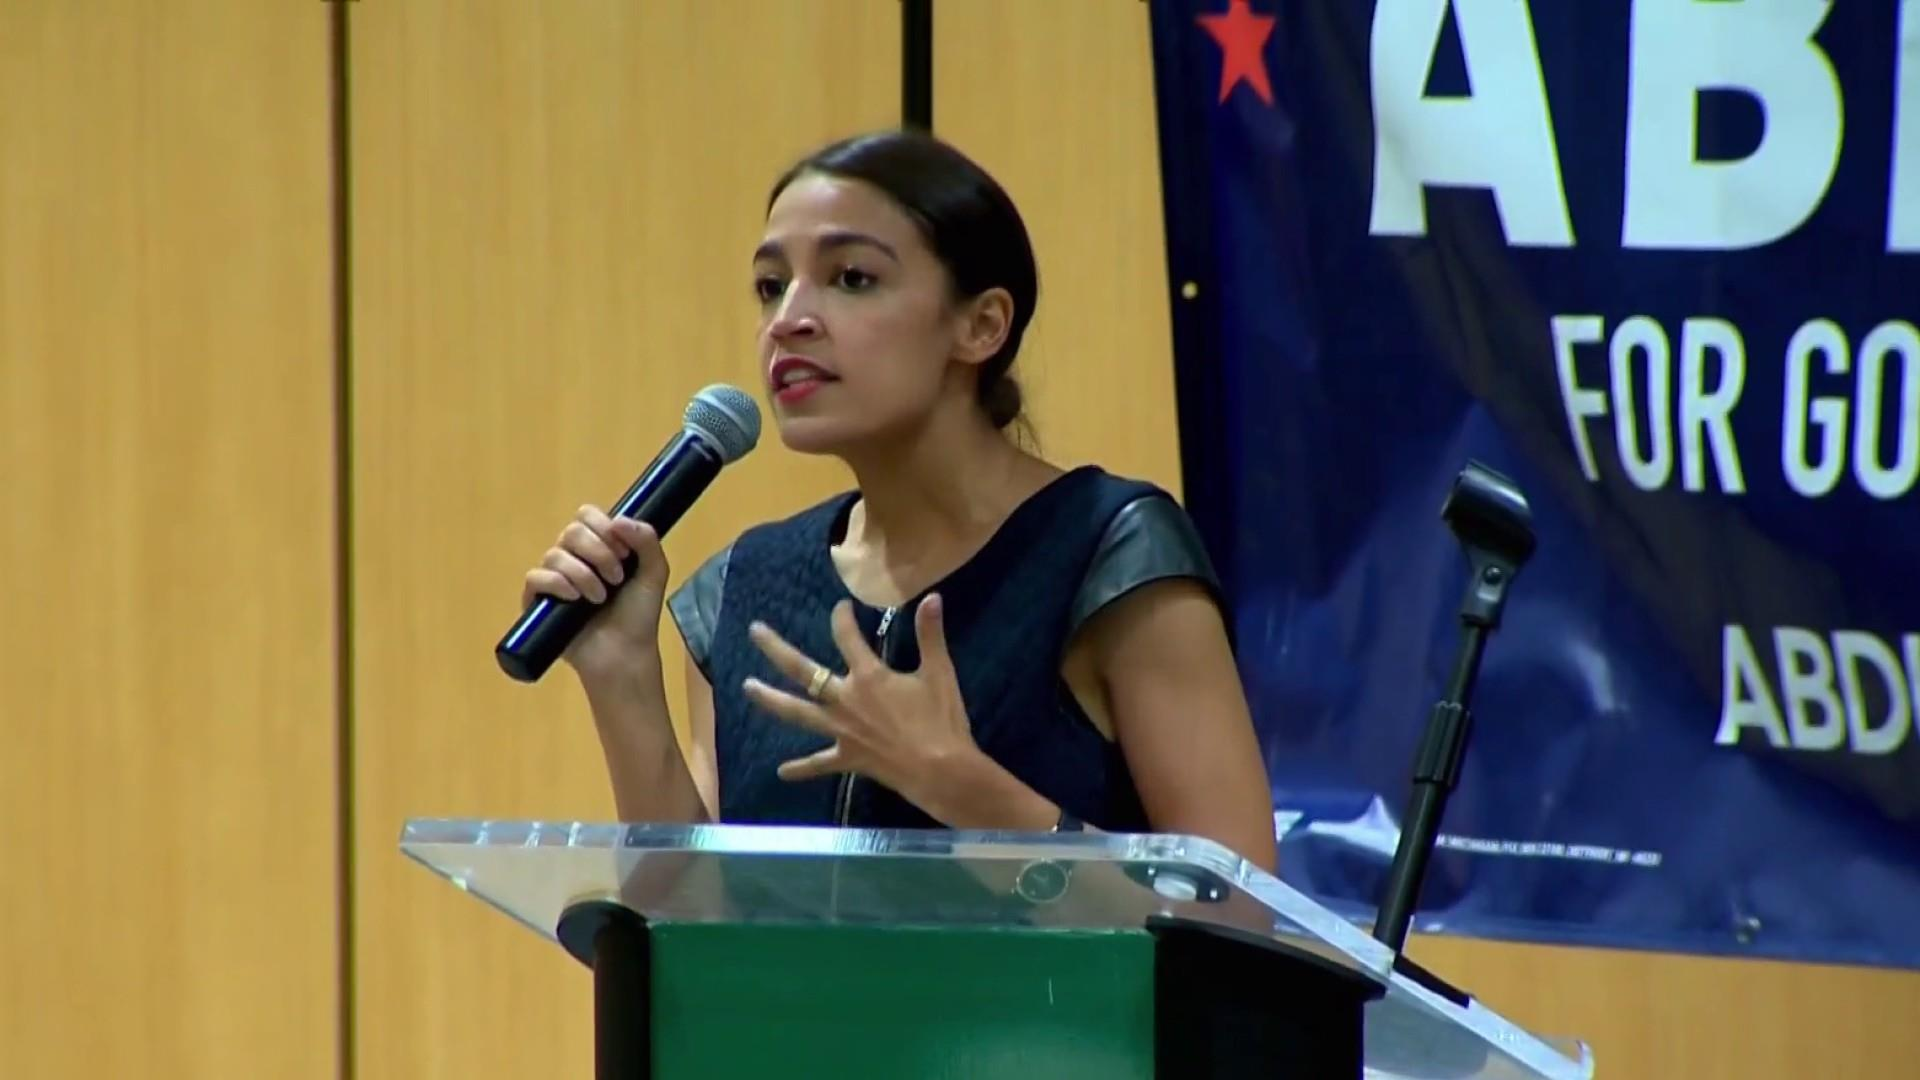 Why the right is obsessed with Rep. Ocasio-Cortez